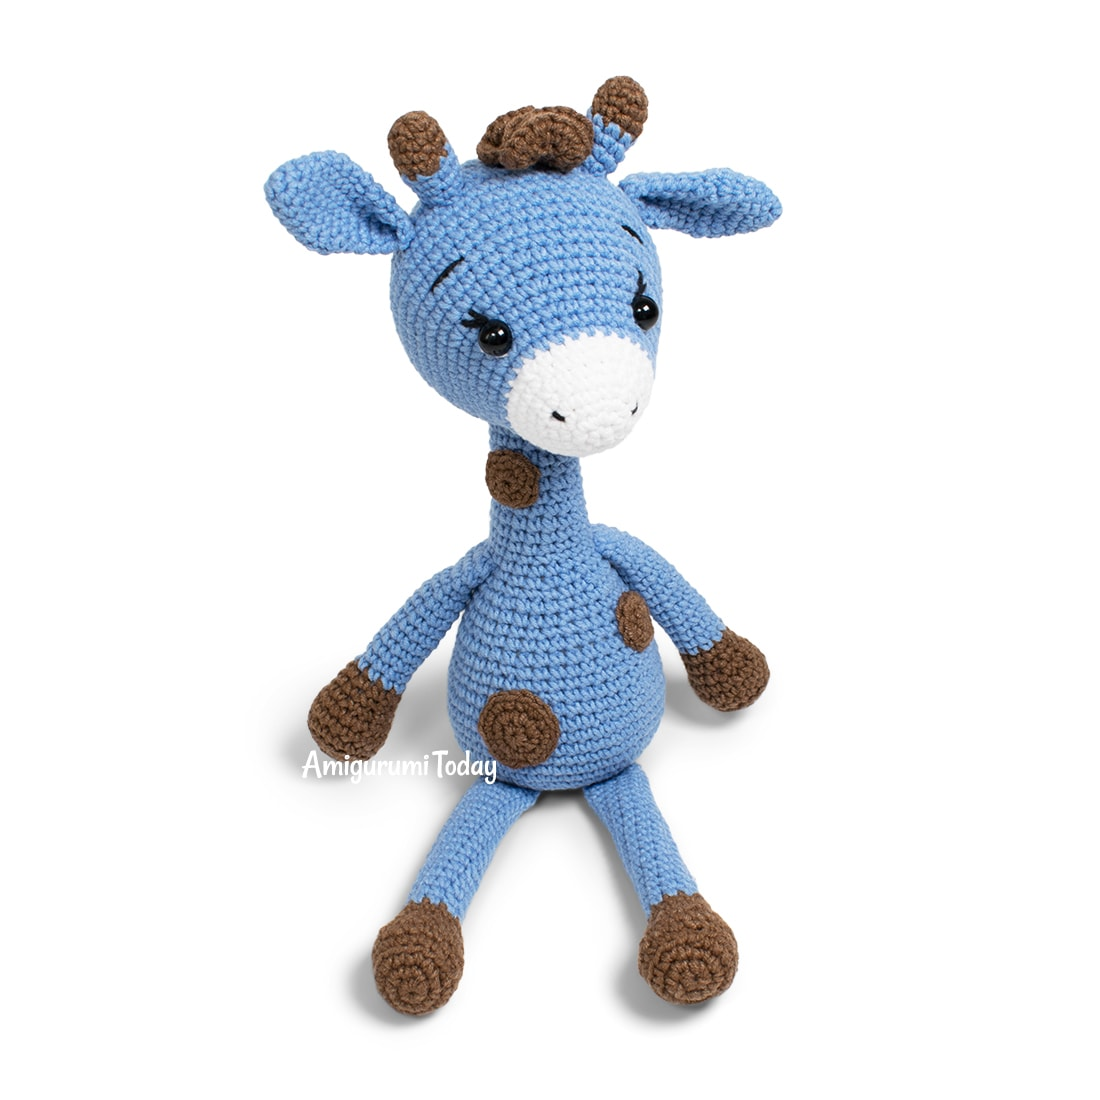 Crochet Blue Giraffe amigurumi pattern by Amigurumi Today